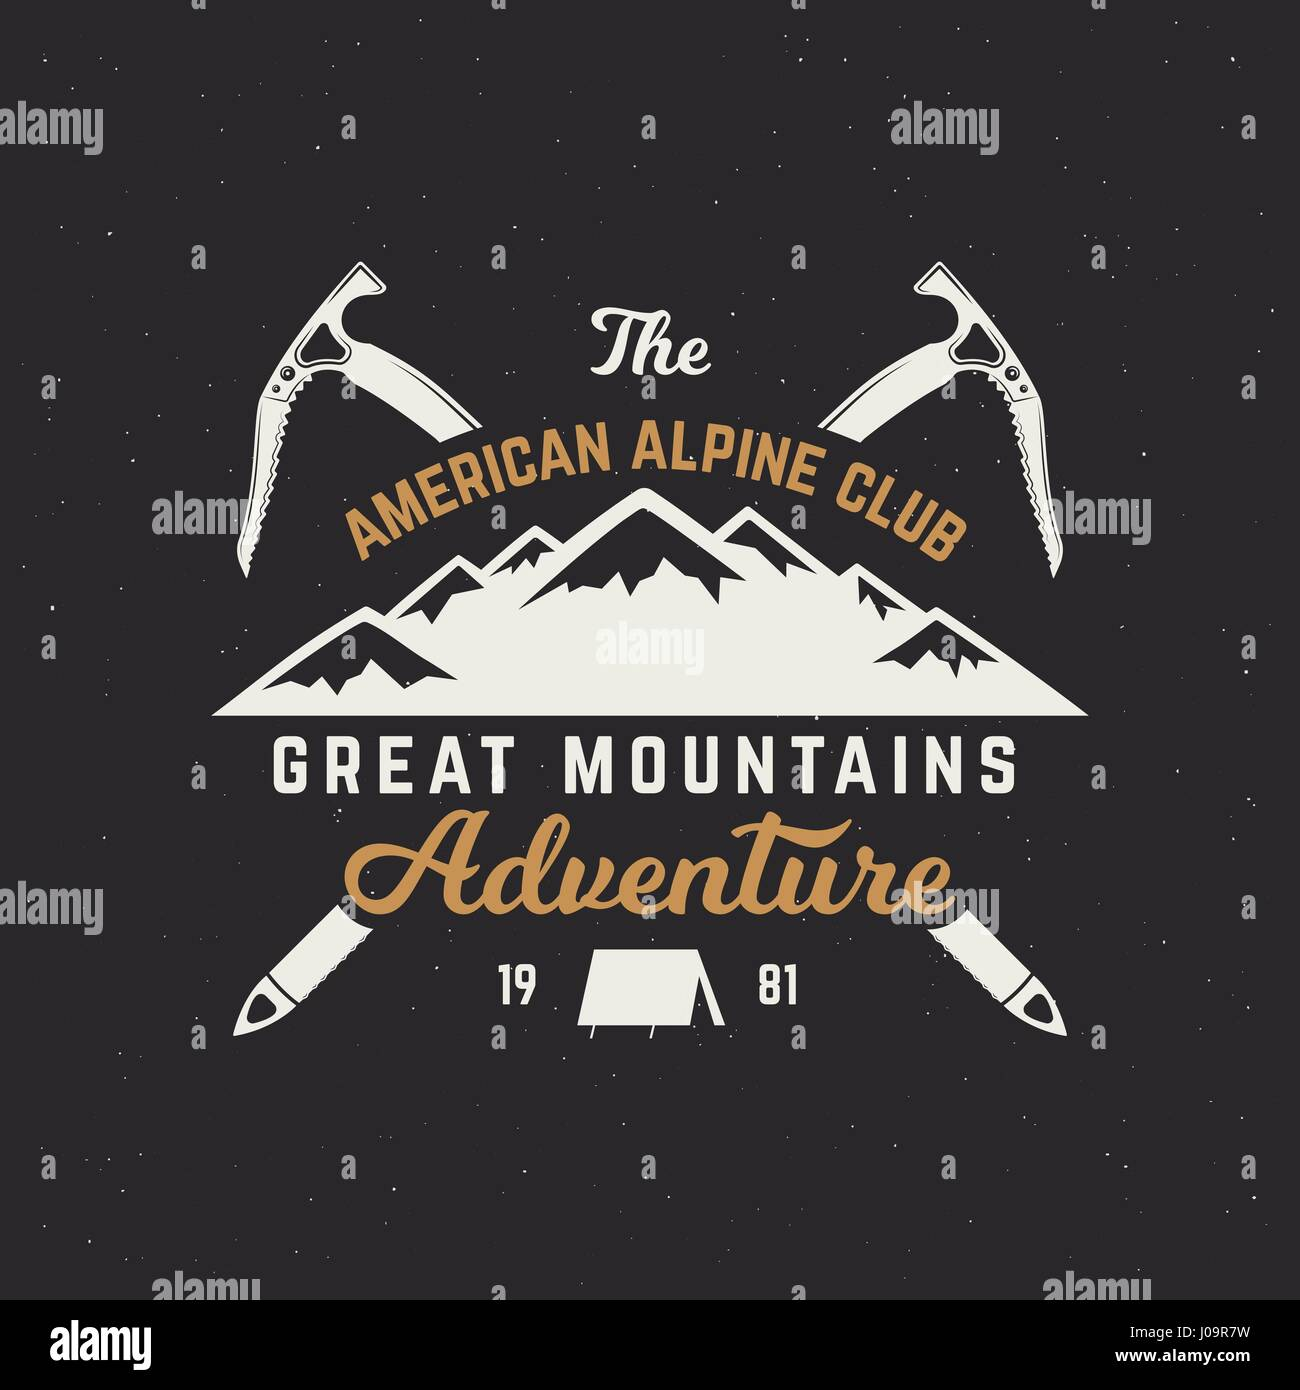 Vintage hand crafted label. Mountain expedition, outdoor adventure badge with climbing symbols and typography design. - Stock Vector